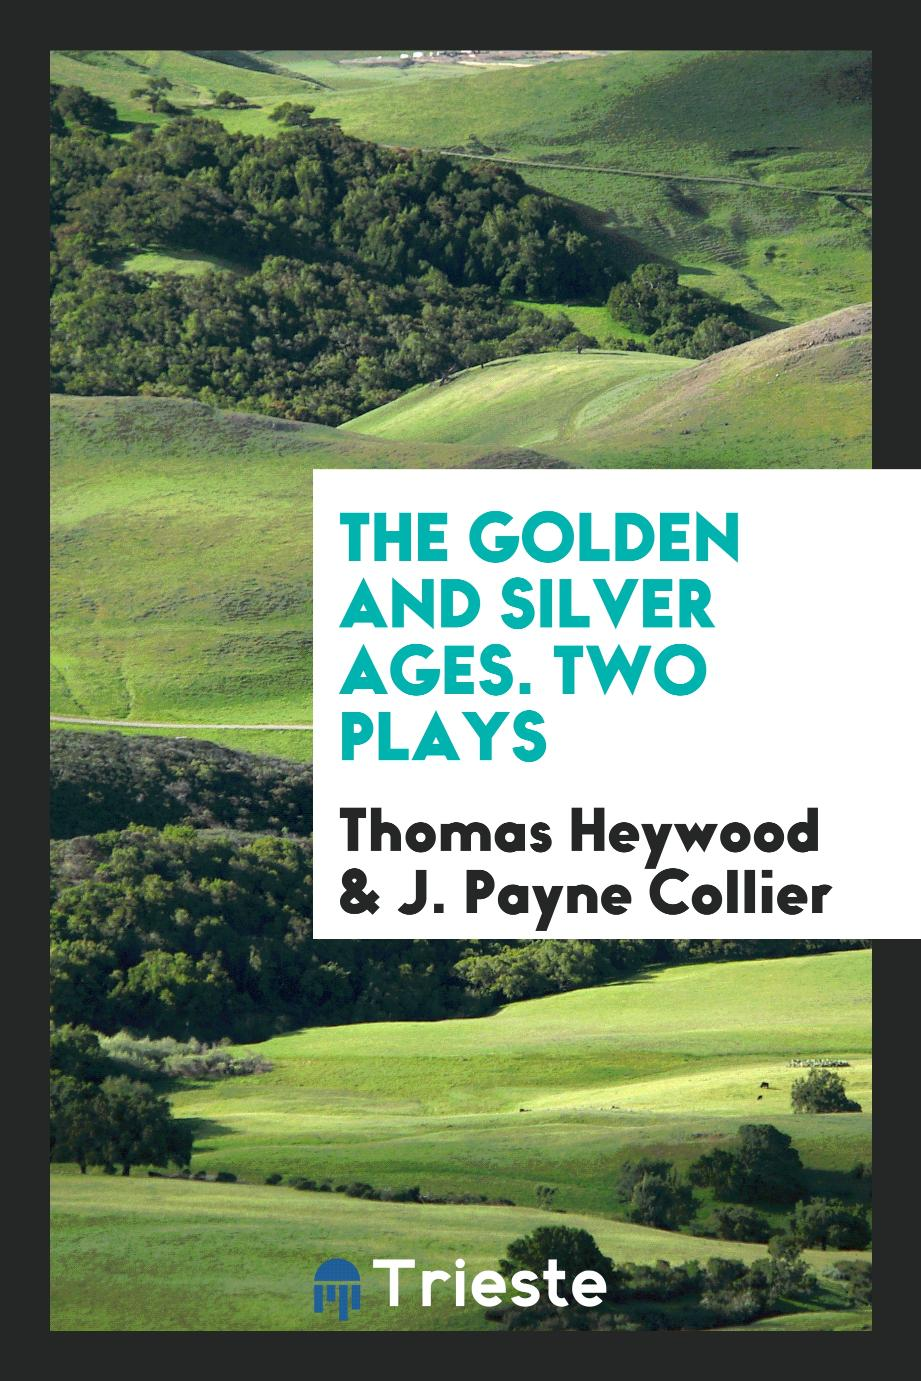 The Golden and Silver ages. Two plays